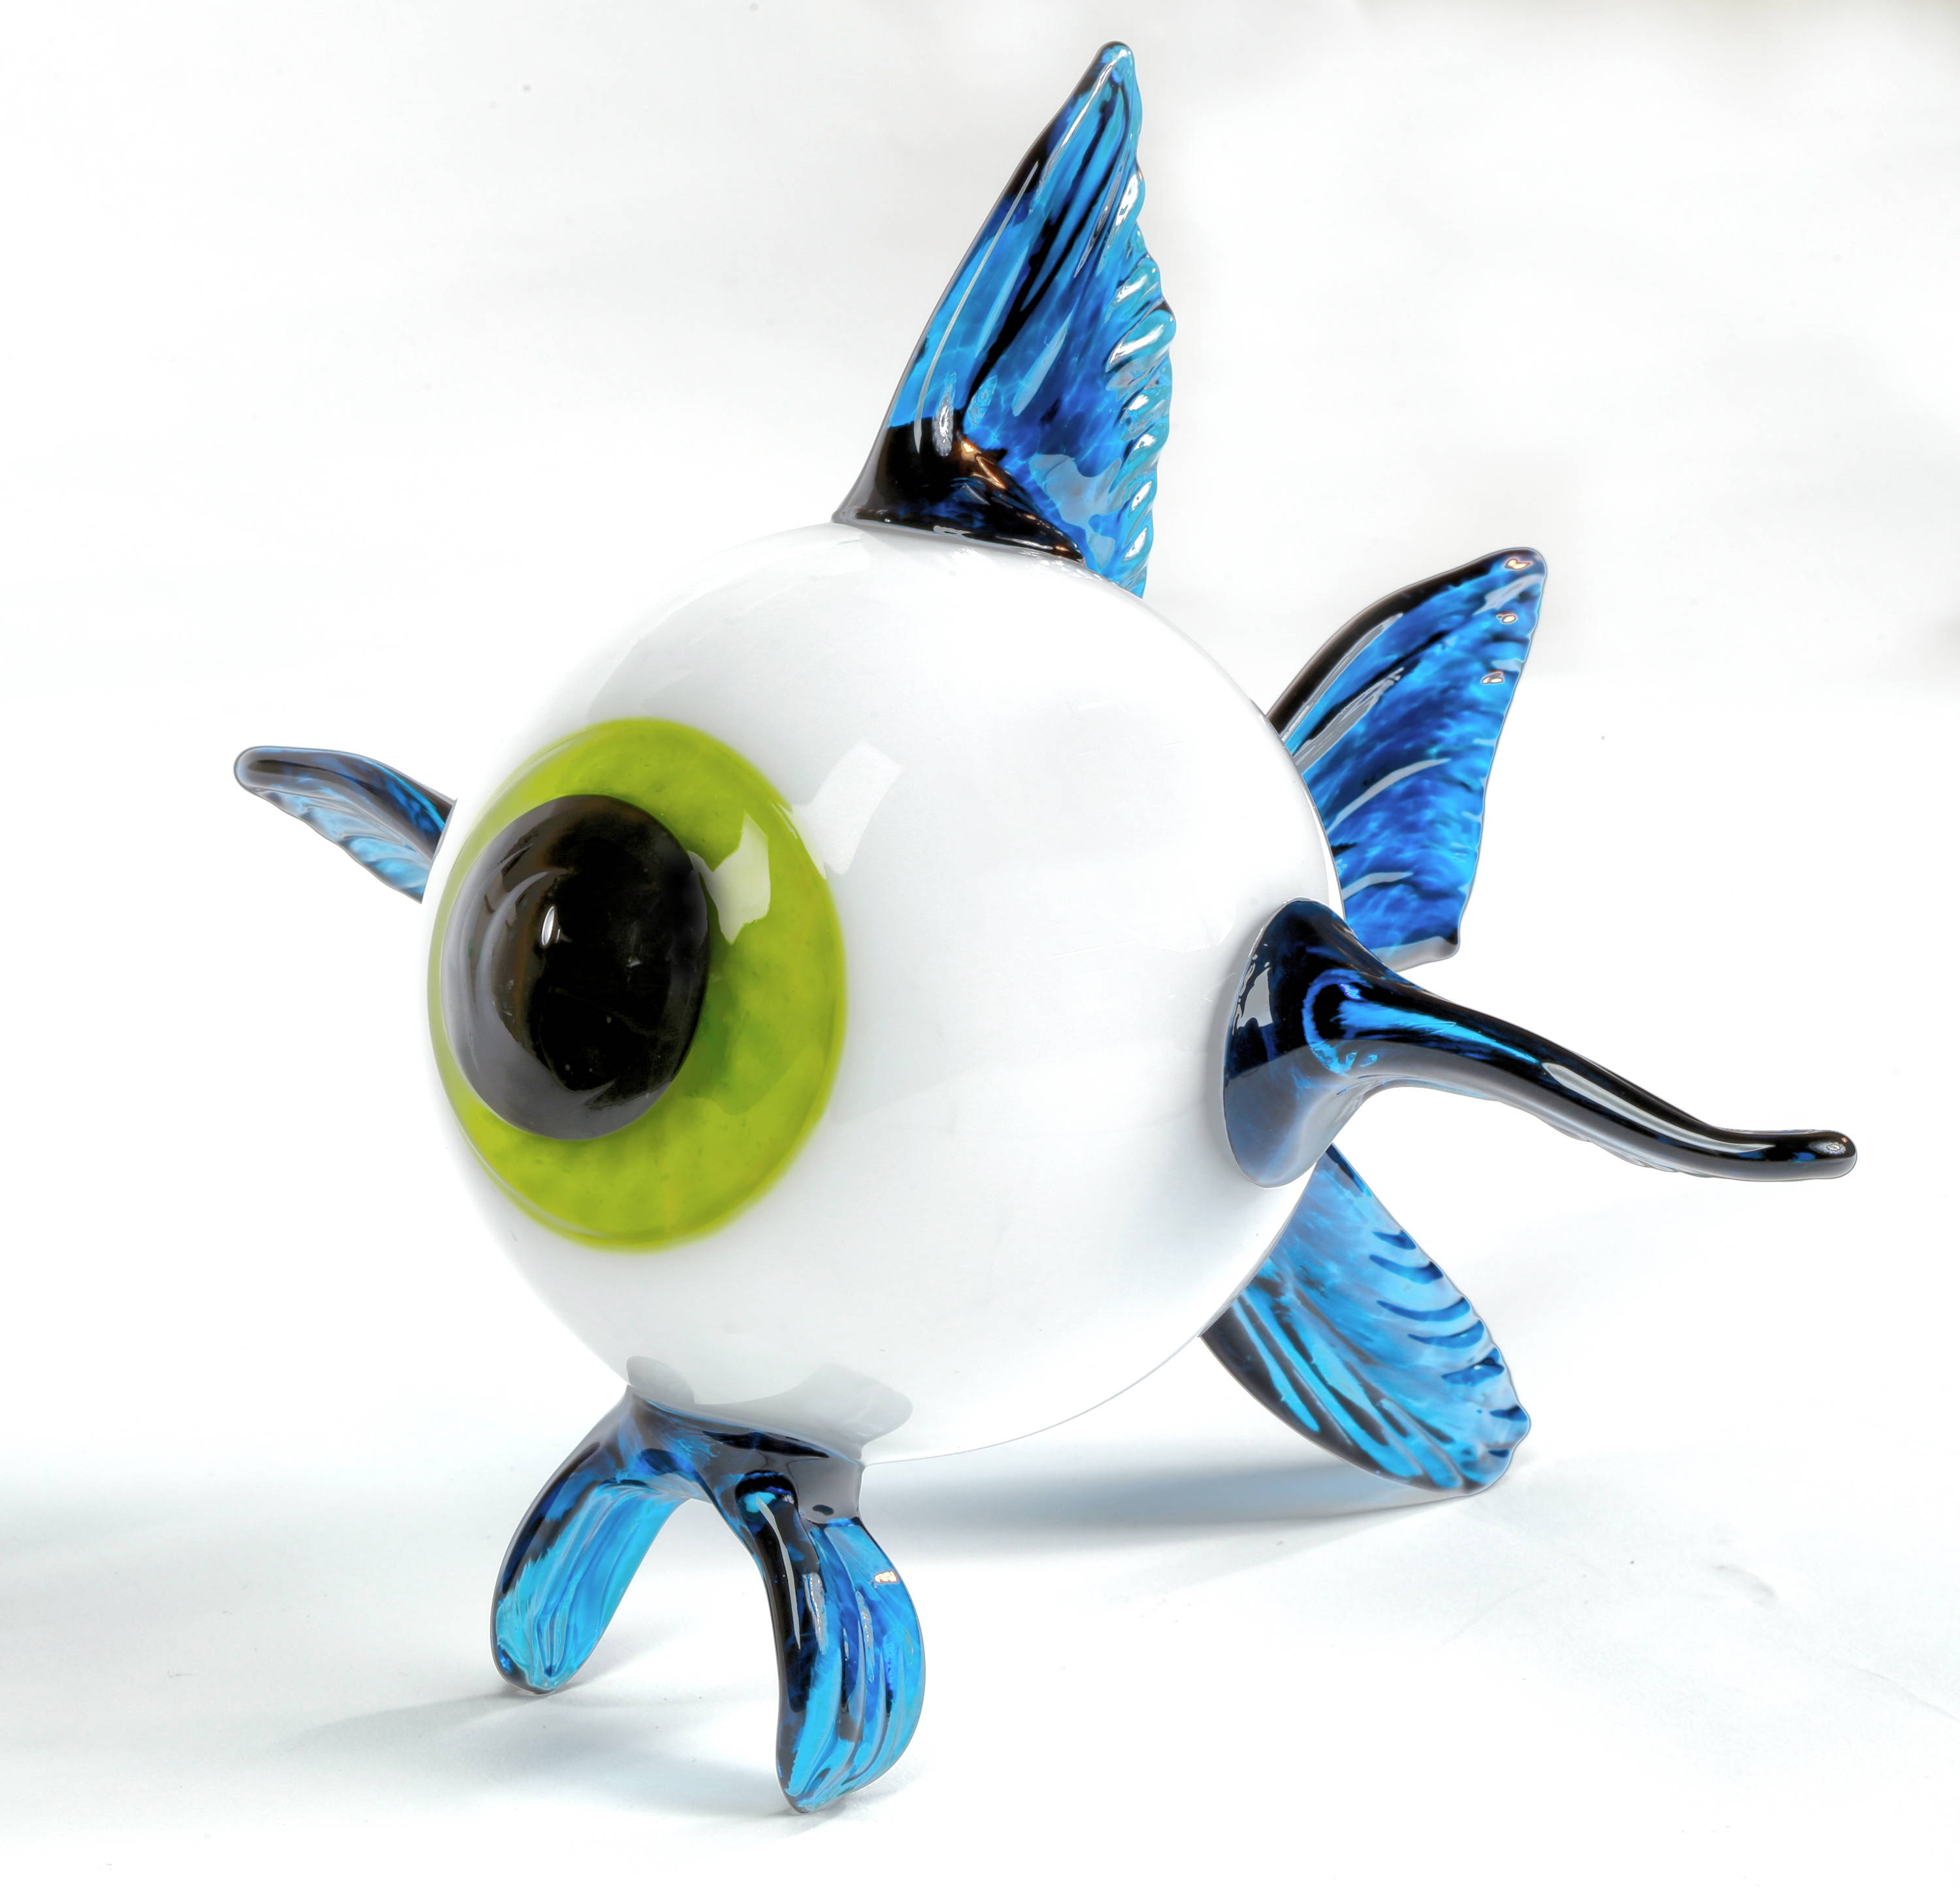 Spark 2018 Silent Auction Preview Terminalcityglass Snap Circuits Sound The Granville Island Toy Company Eyeball Fish By Laura Burns Hand Blown Glass 6 In Diameter Starting Bid 100